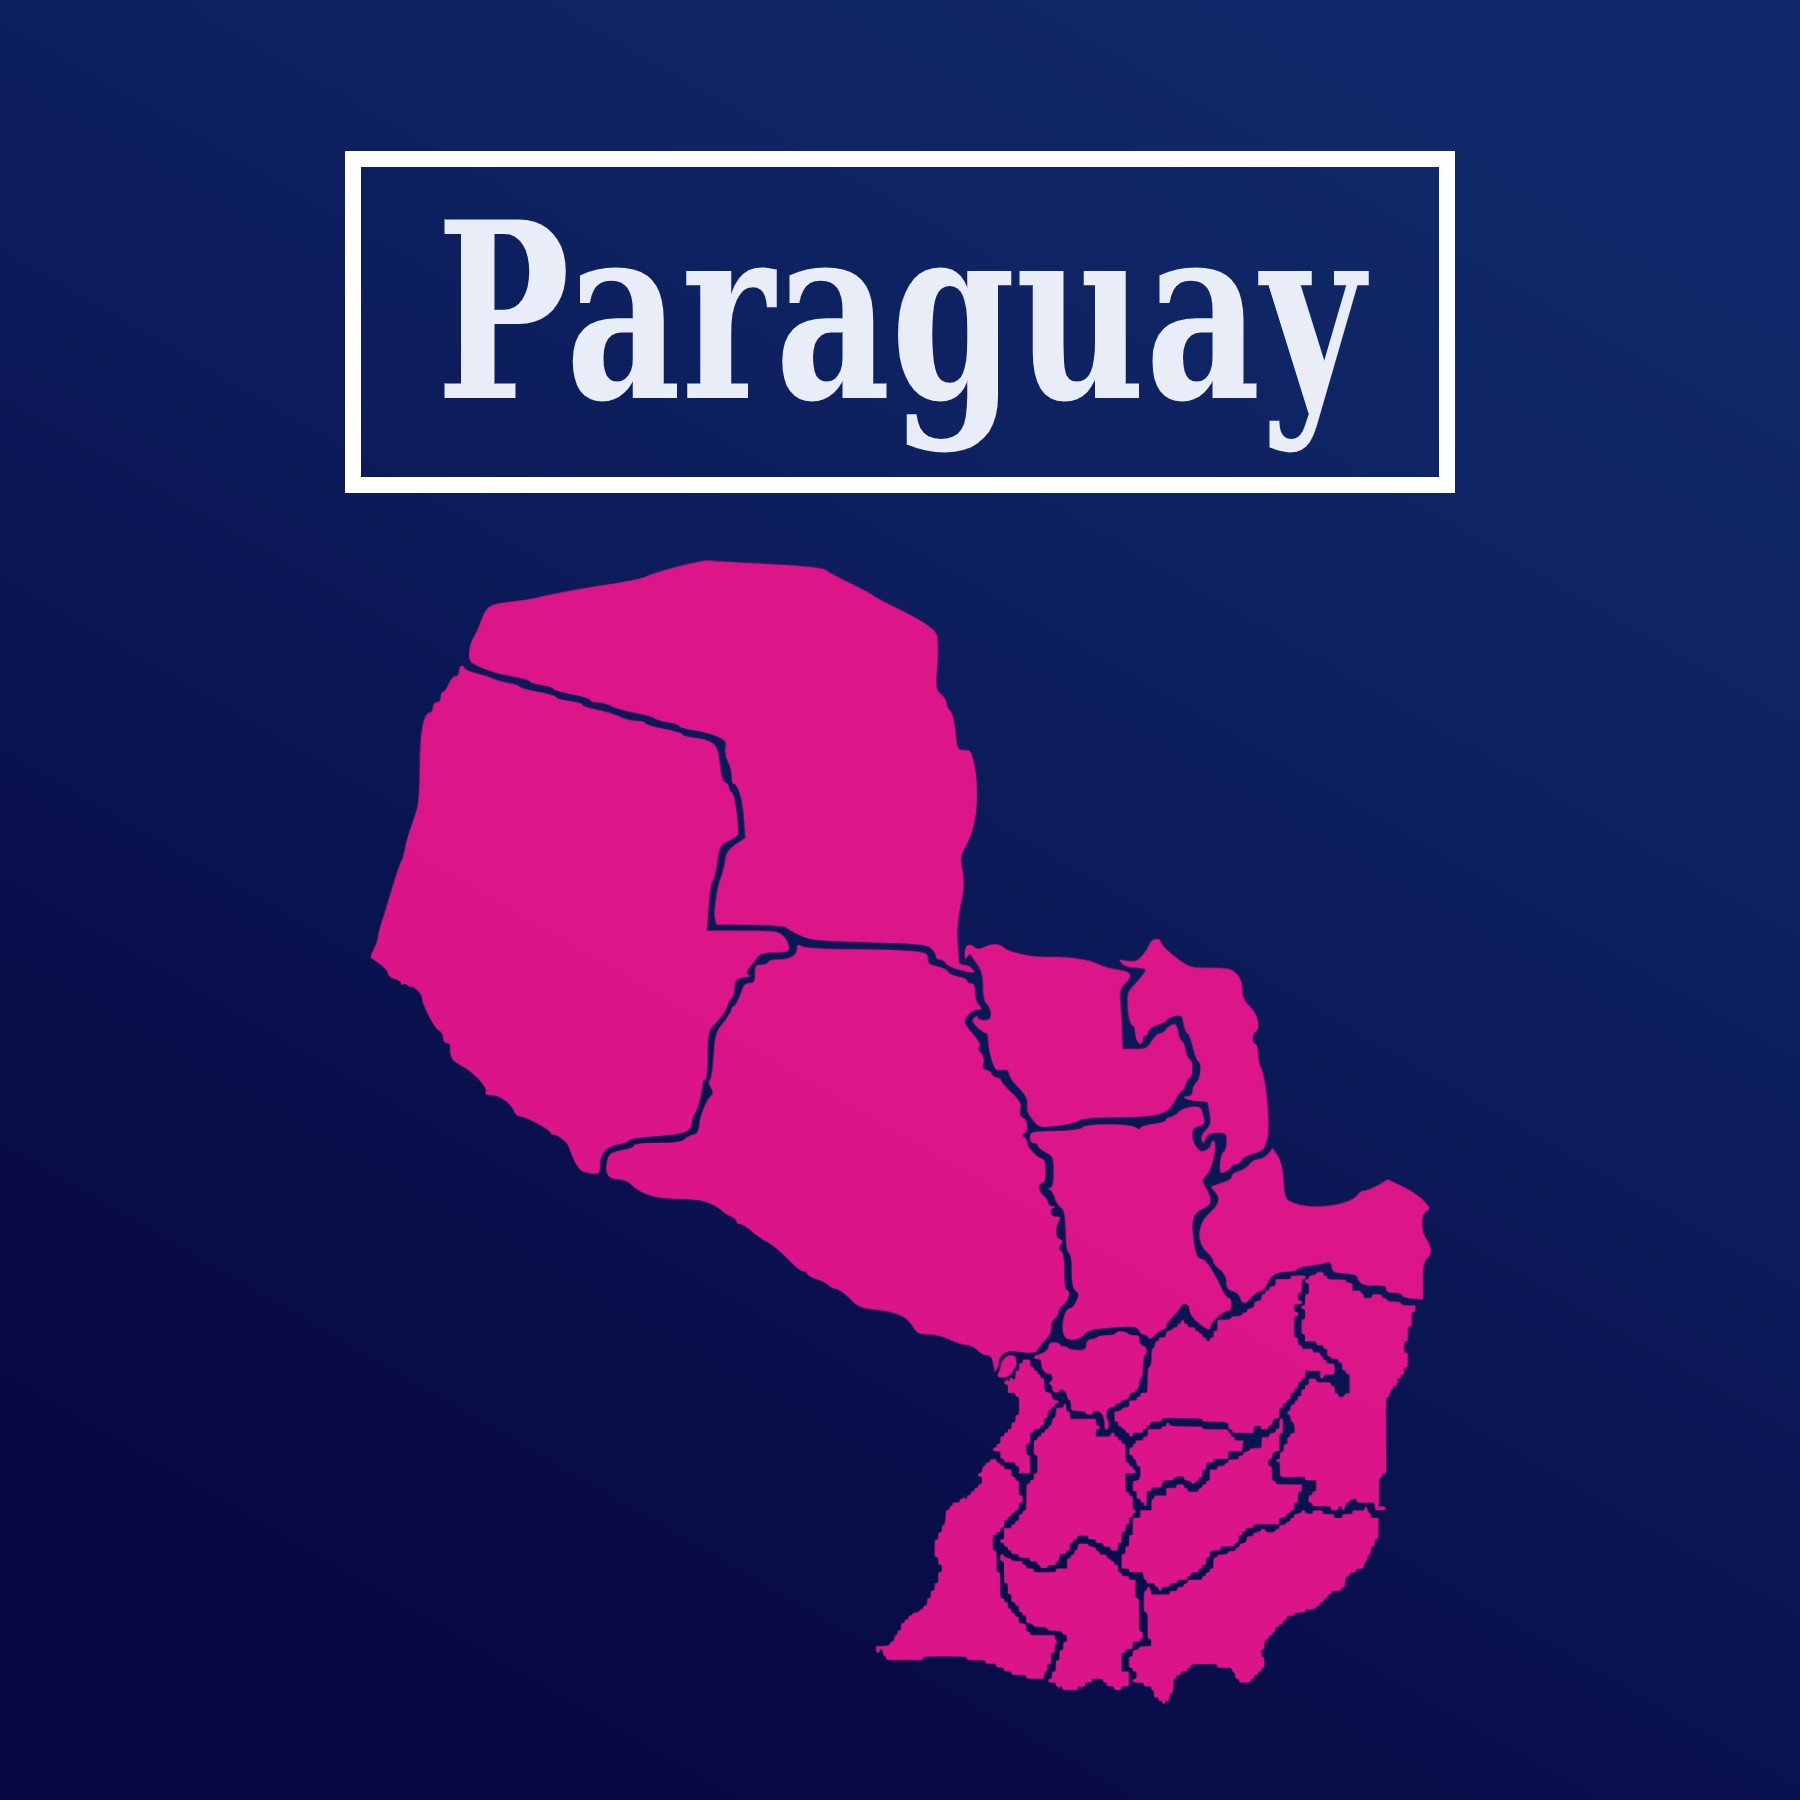 Episode 16: Andrew Nickson on Paraguay's Political Economy